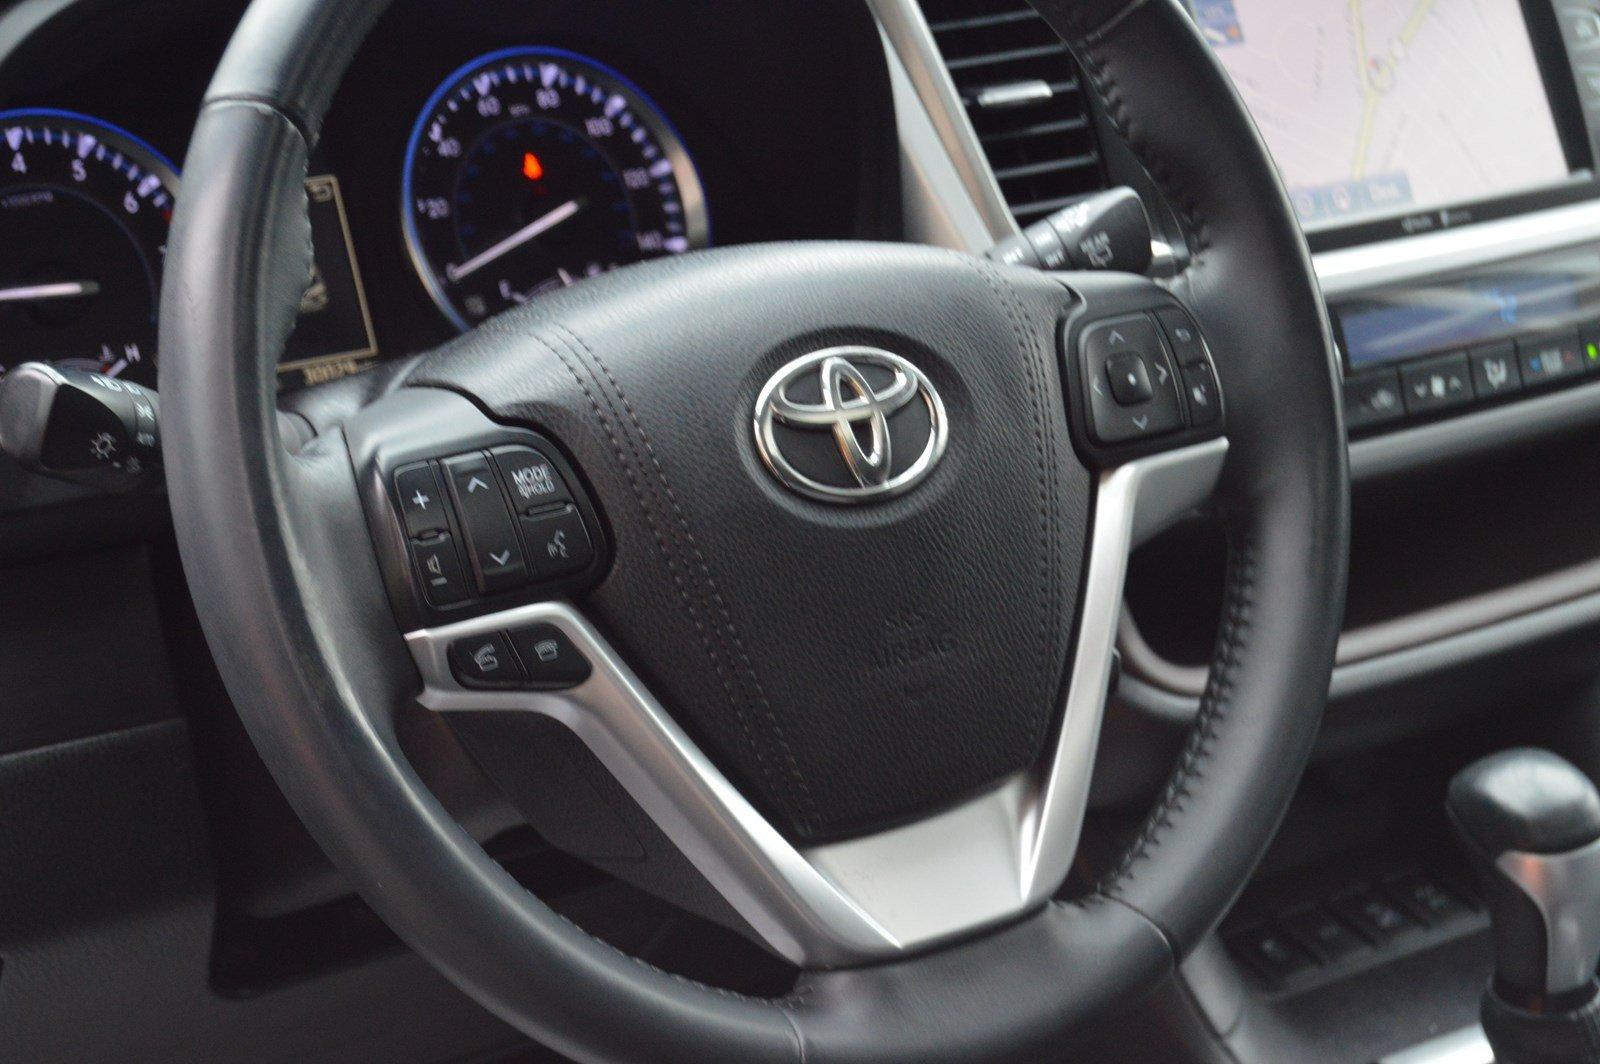 Used-2015-Toyota-Highlander-XLE-(Navi/Leather/Sunroof)